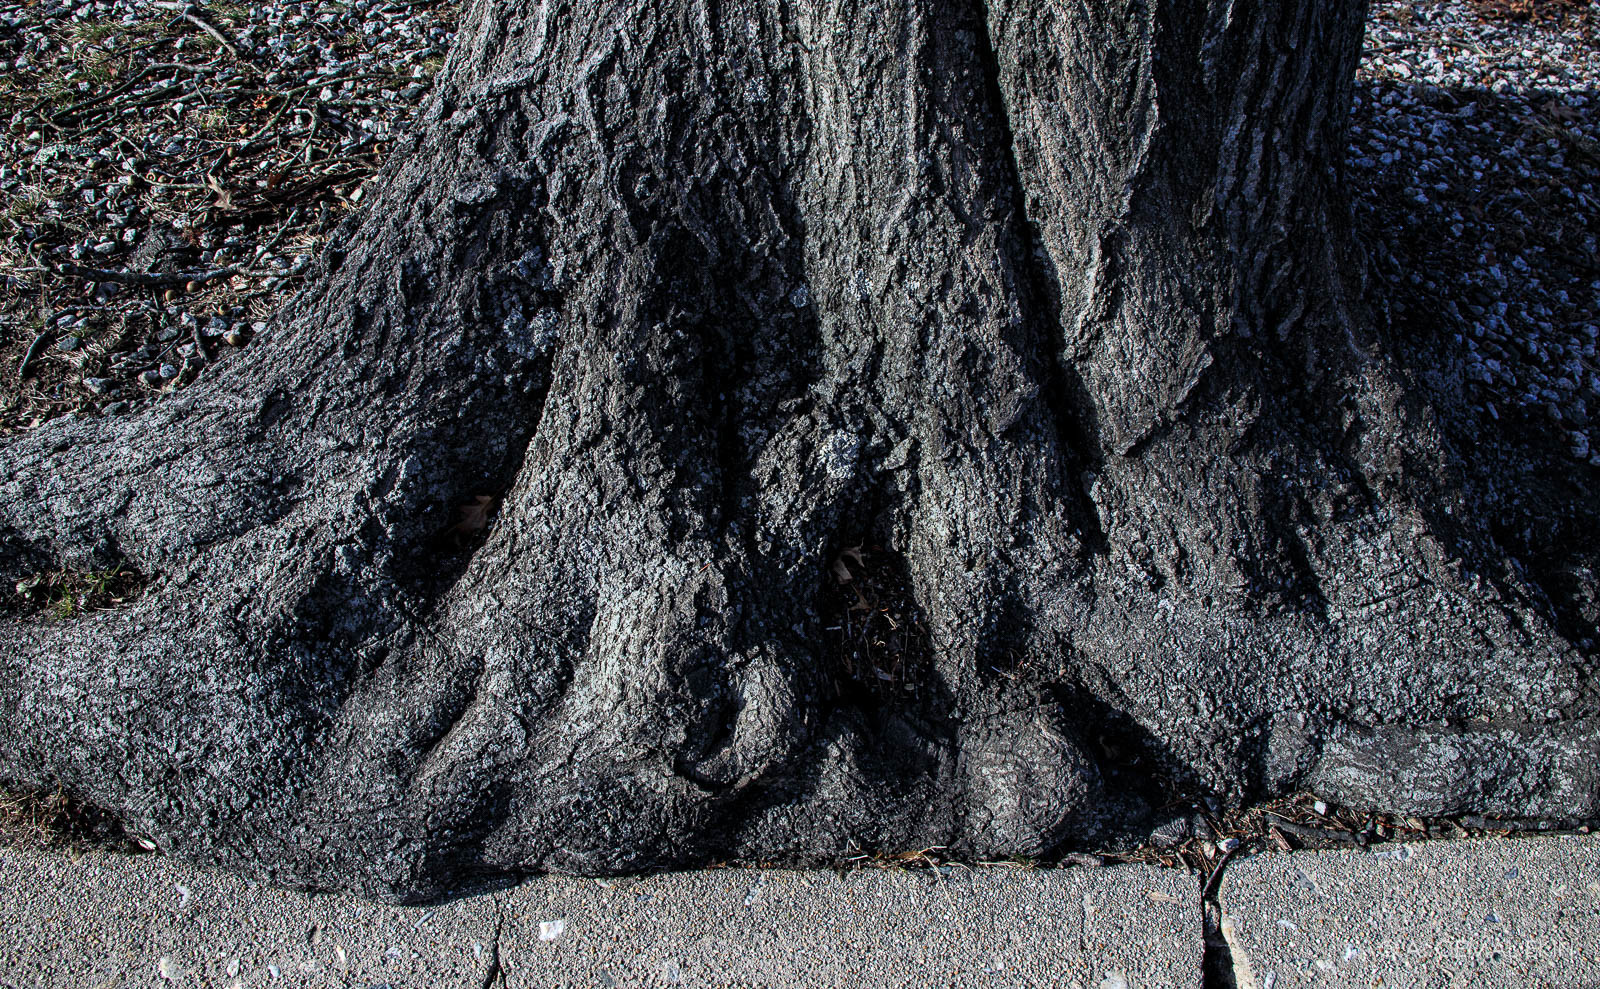 Tree roots fighting with concrete